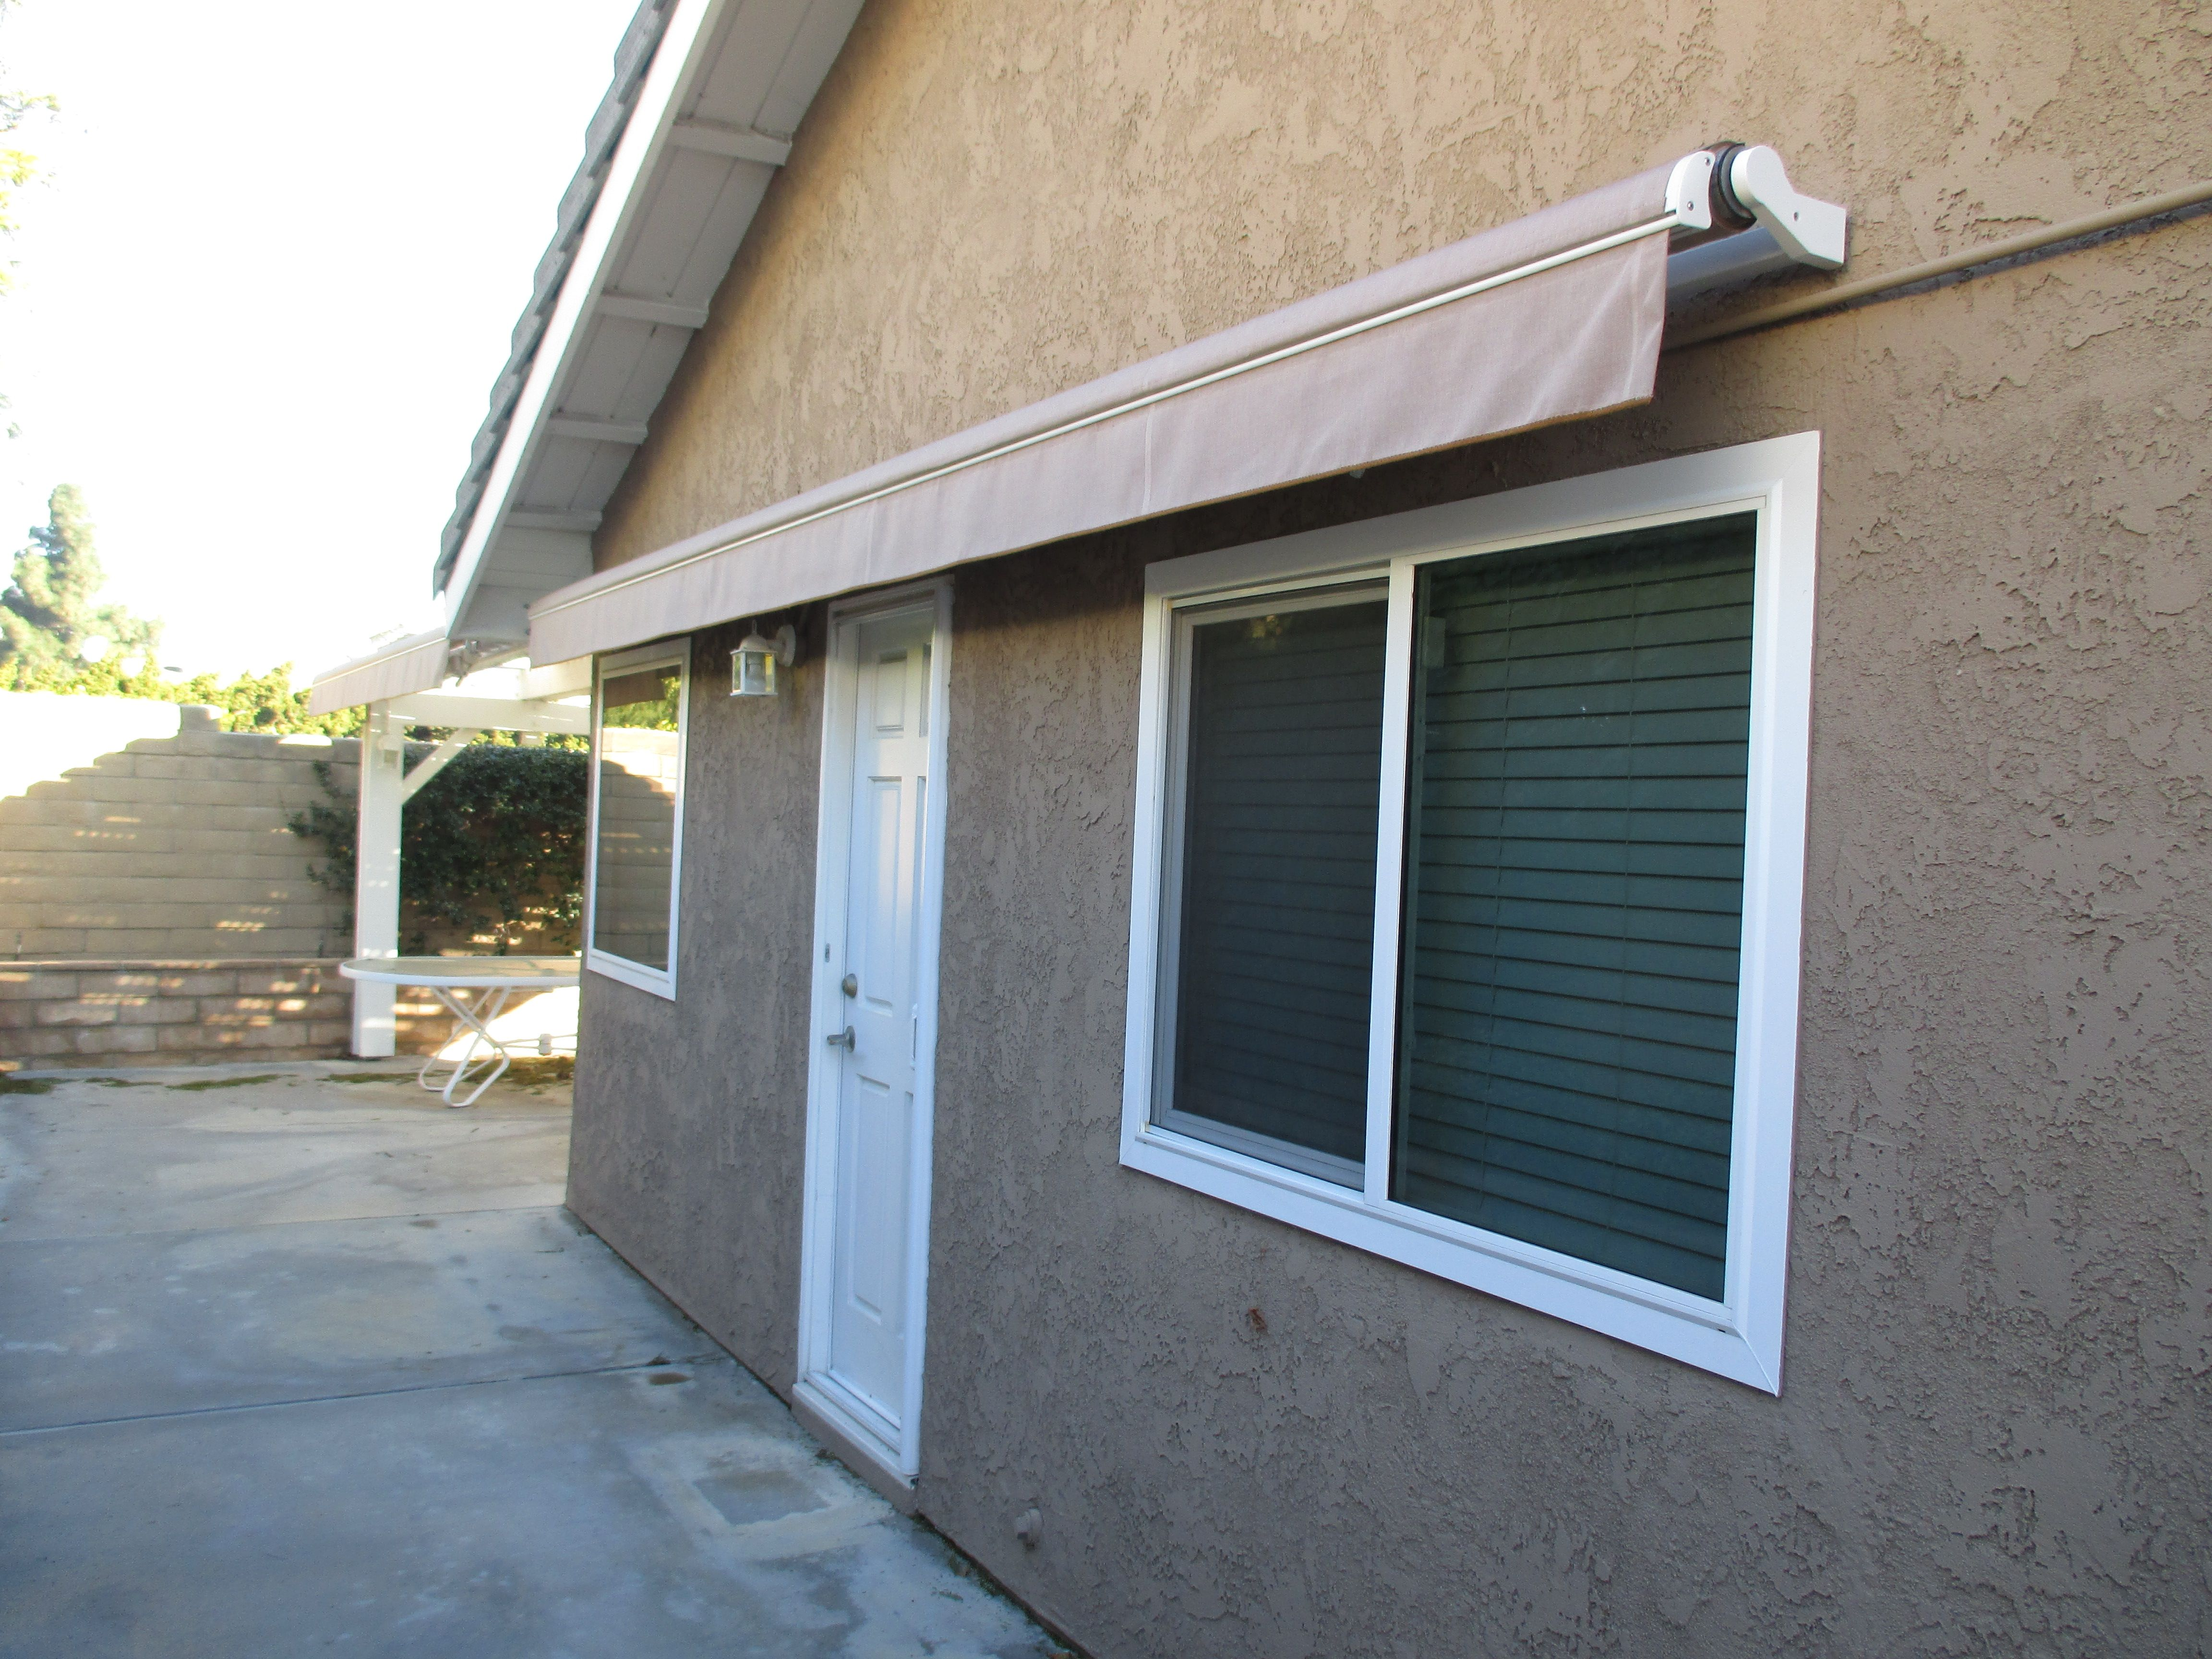 Retracted Manual Retractable Awning In Yorba Linda California - Home california retractable walls